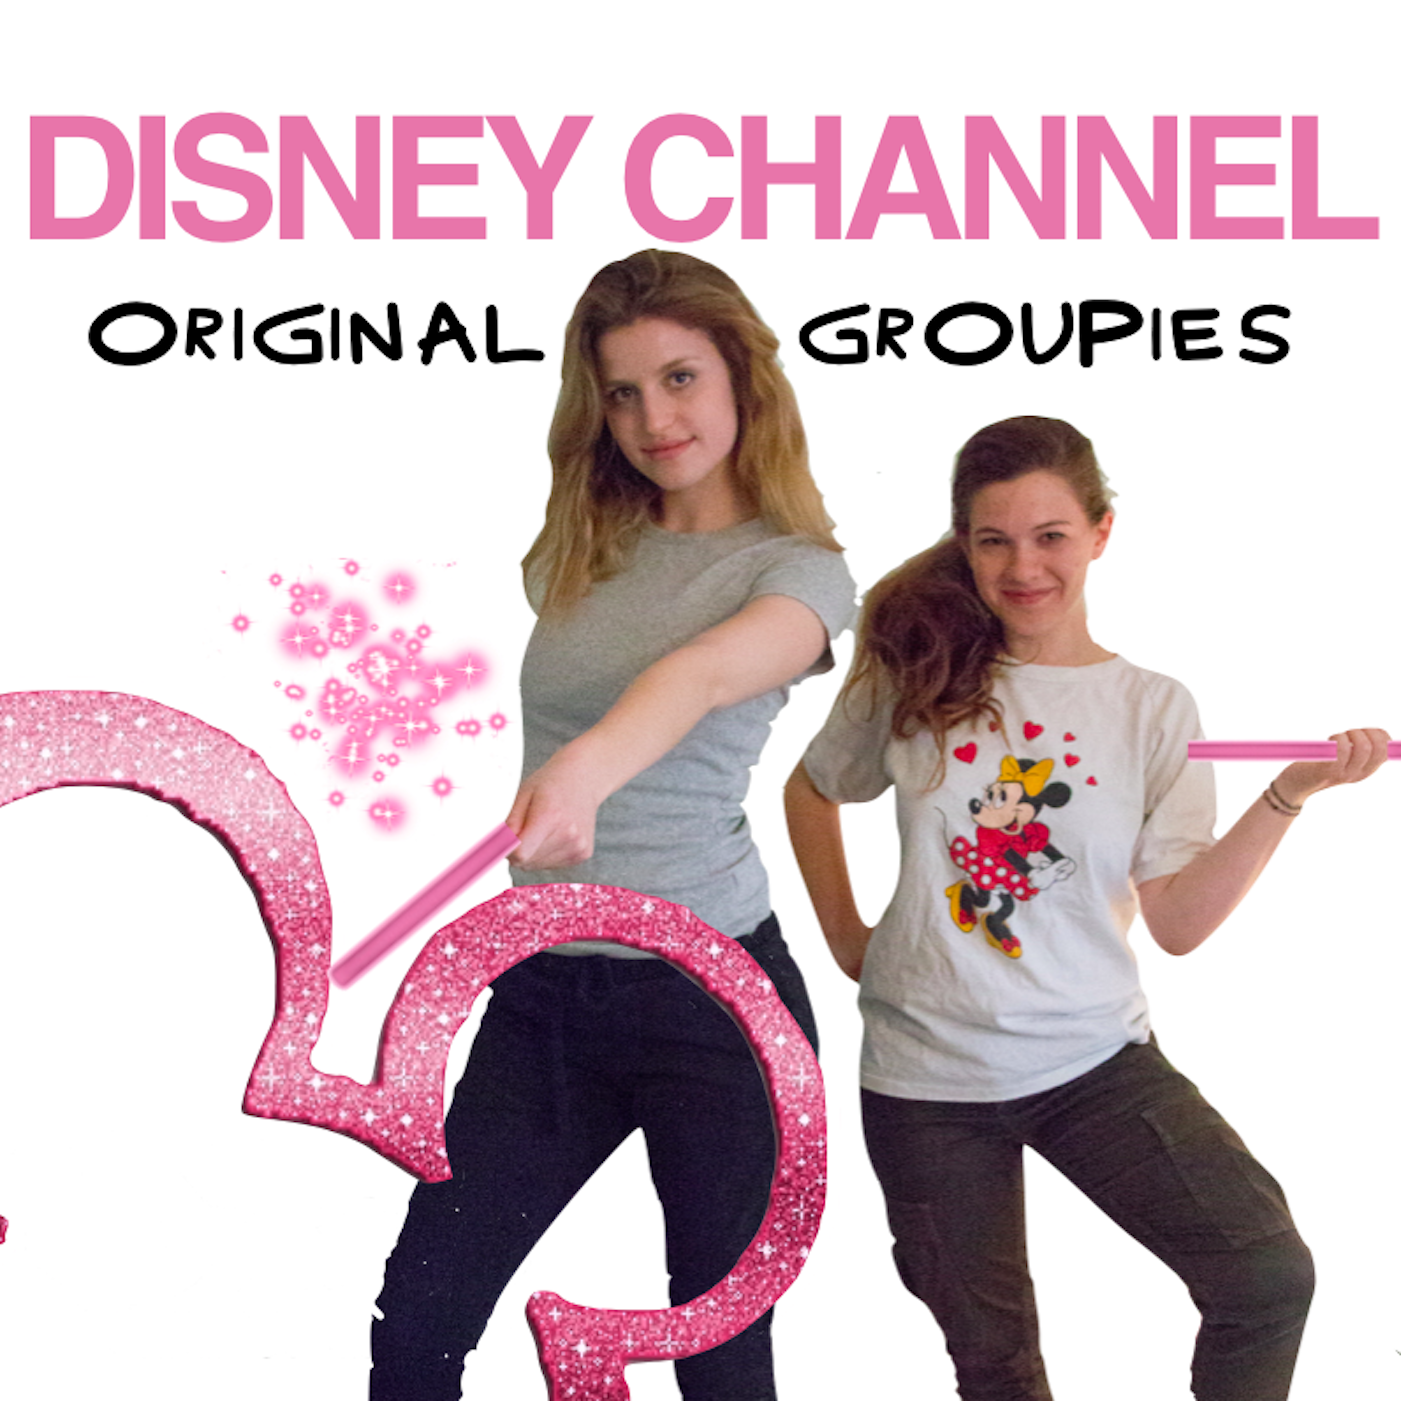 Disney Channel Original Groupies By Jackie And Ralter On Apple